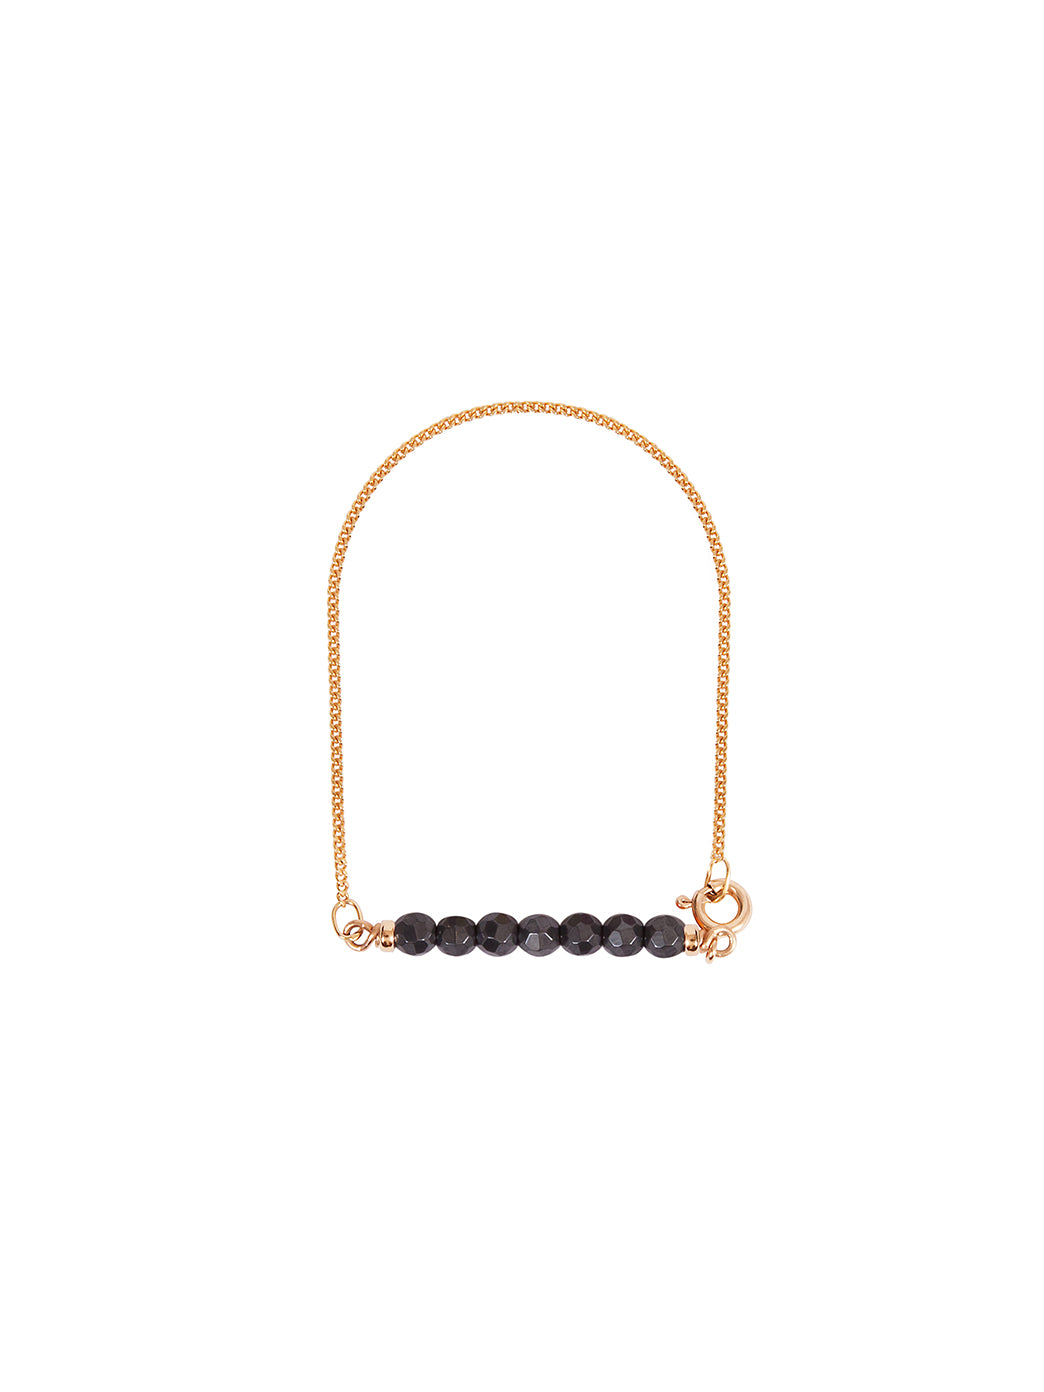 Fiorina Jewellery Gold Friendship Bracelet Hematite